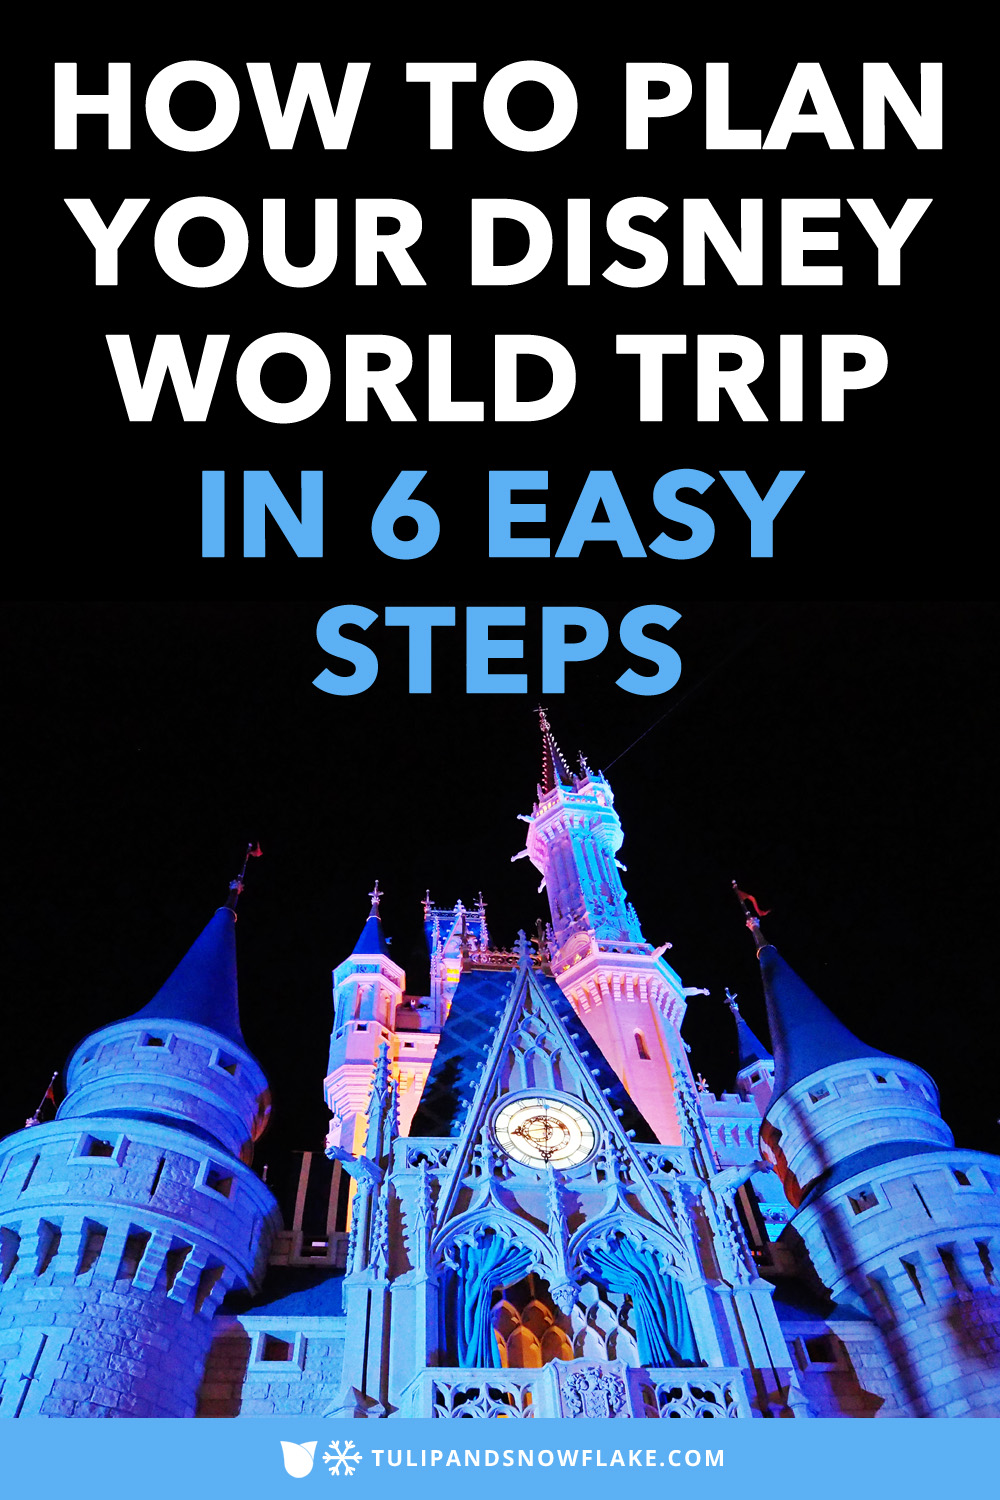 How to plan your Disney World trip